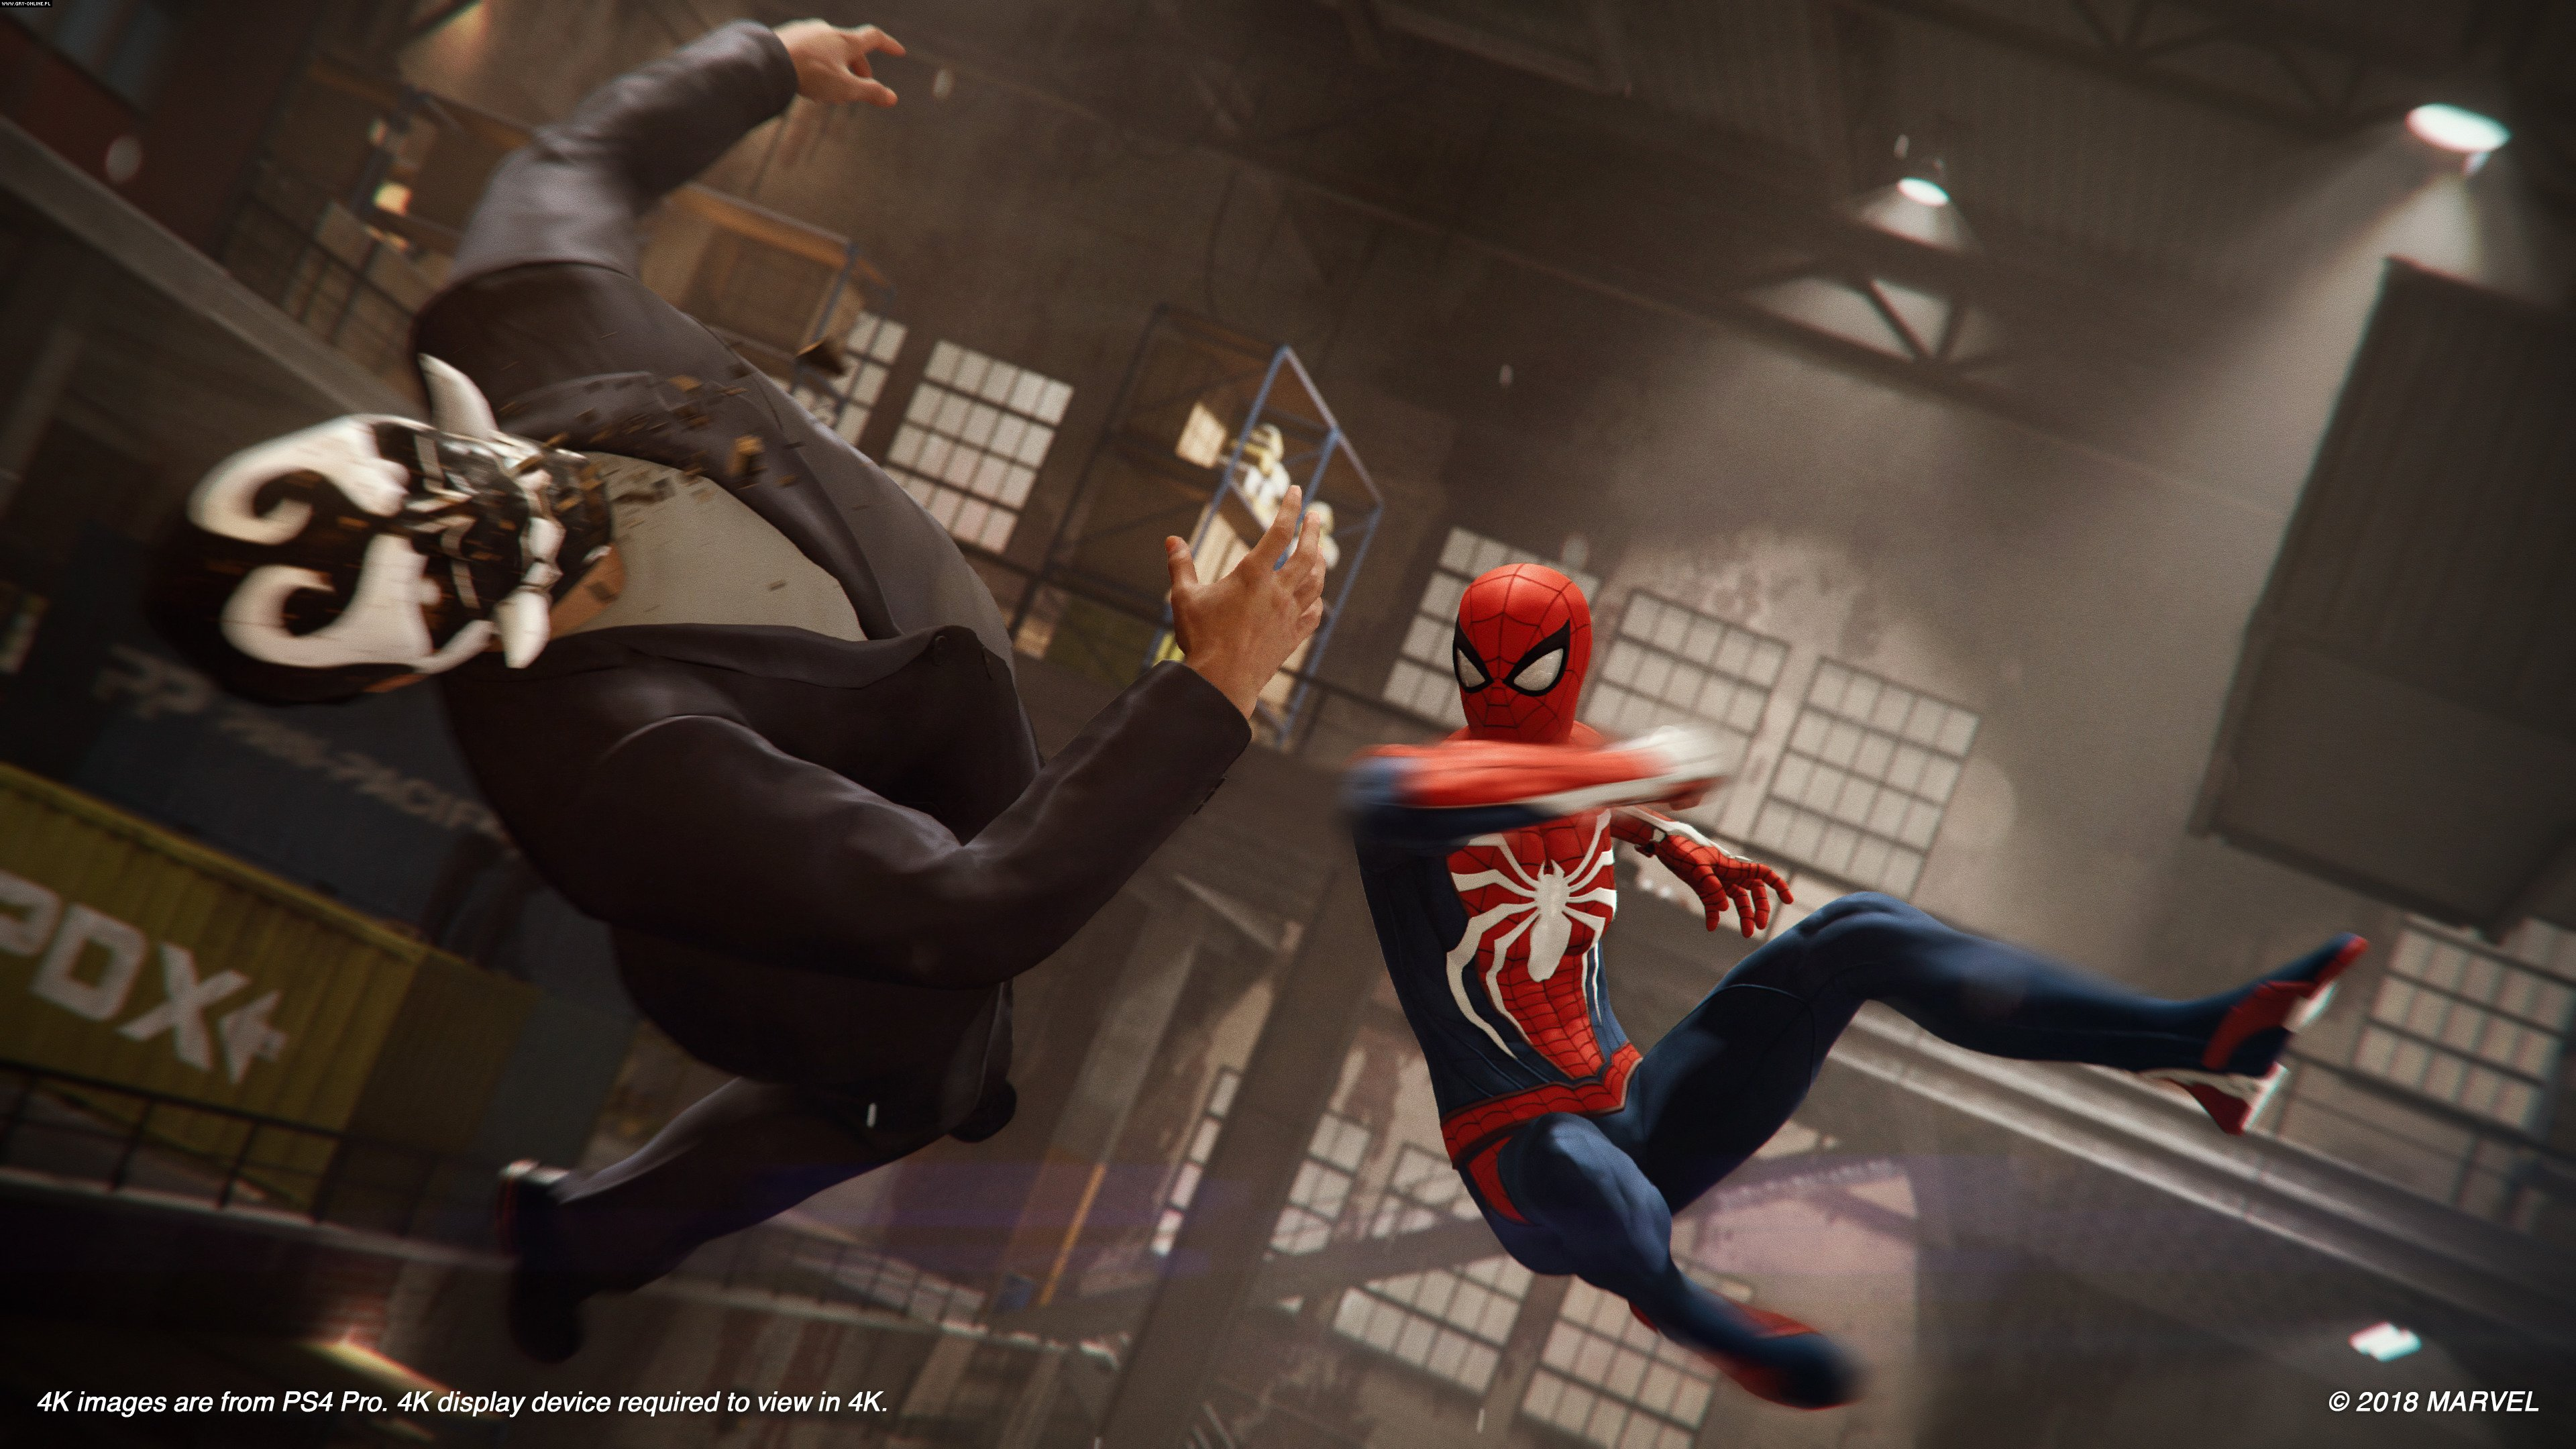 Spider-Man PS4 Games Image 19/45, Insomniac Games, Sony Interactive Entertainment